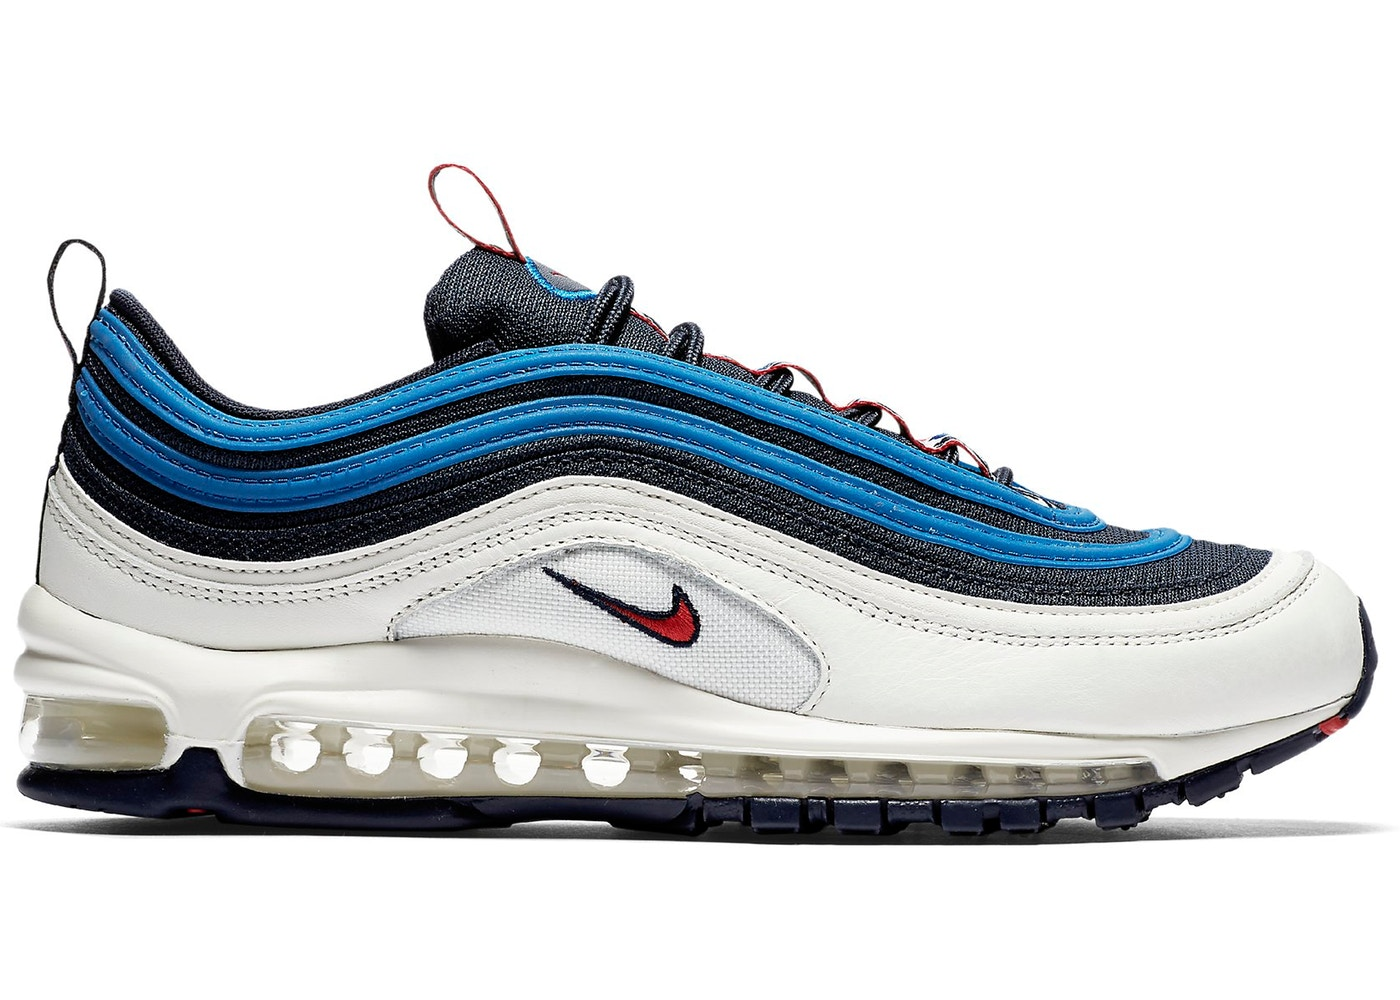 air max 97 pull tab obsidian white. Black Bedroom Furniture Sets. Home Design Ideas